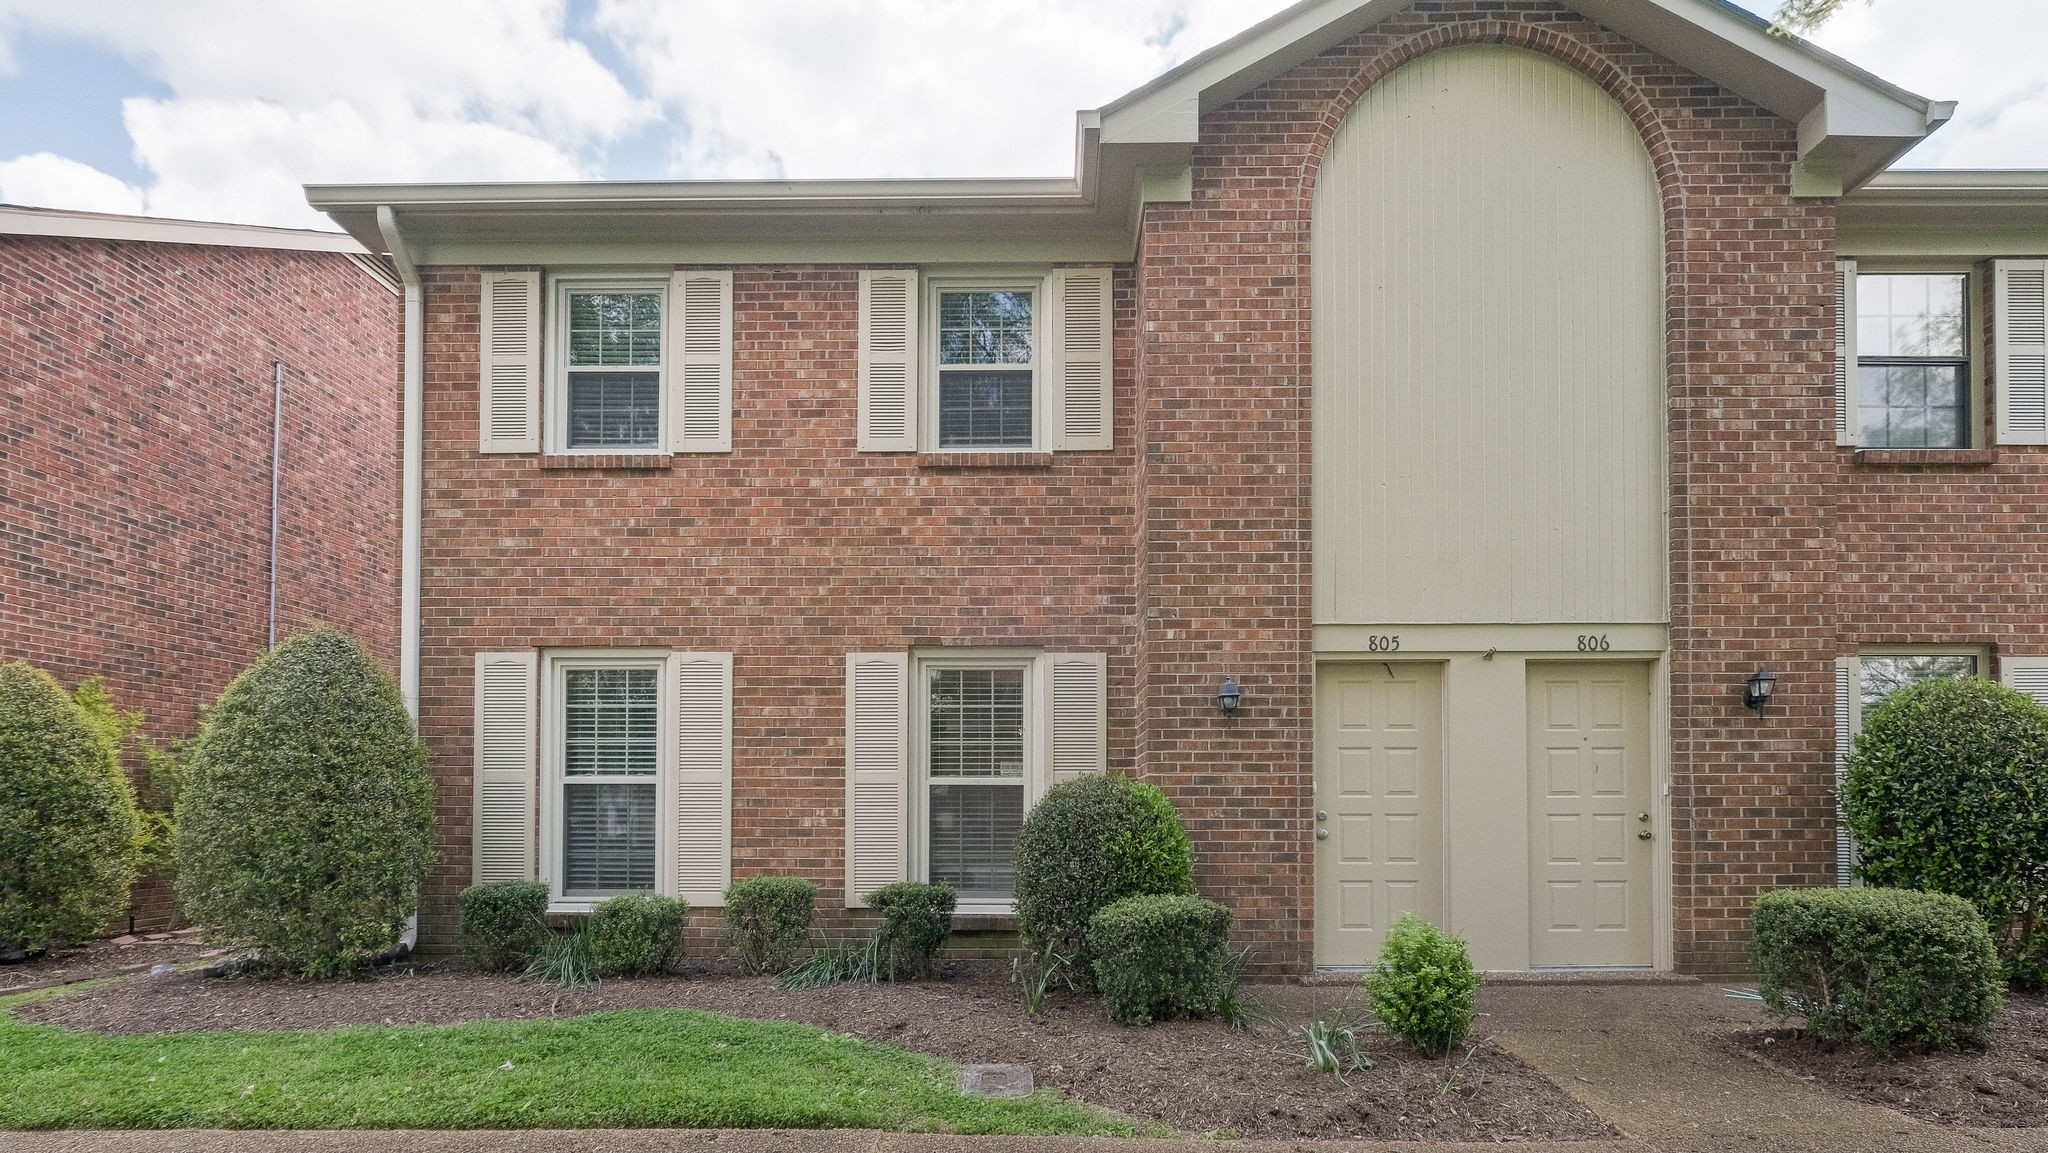 805 General George Patton Rd Property Photo - Nashville, TN real estate listing